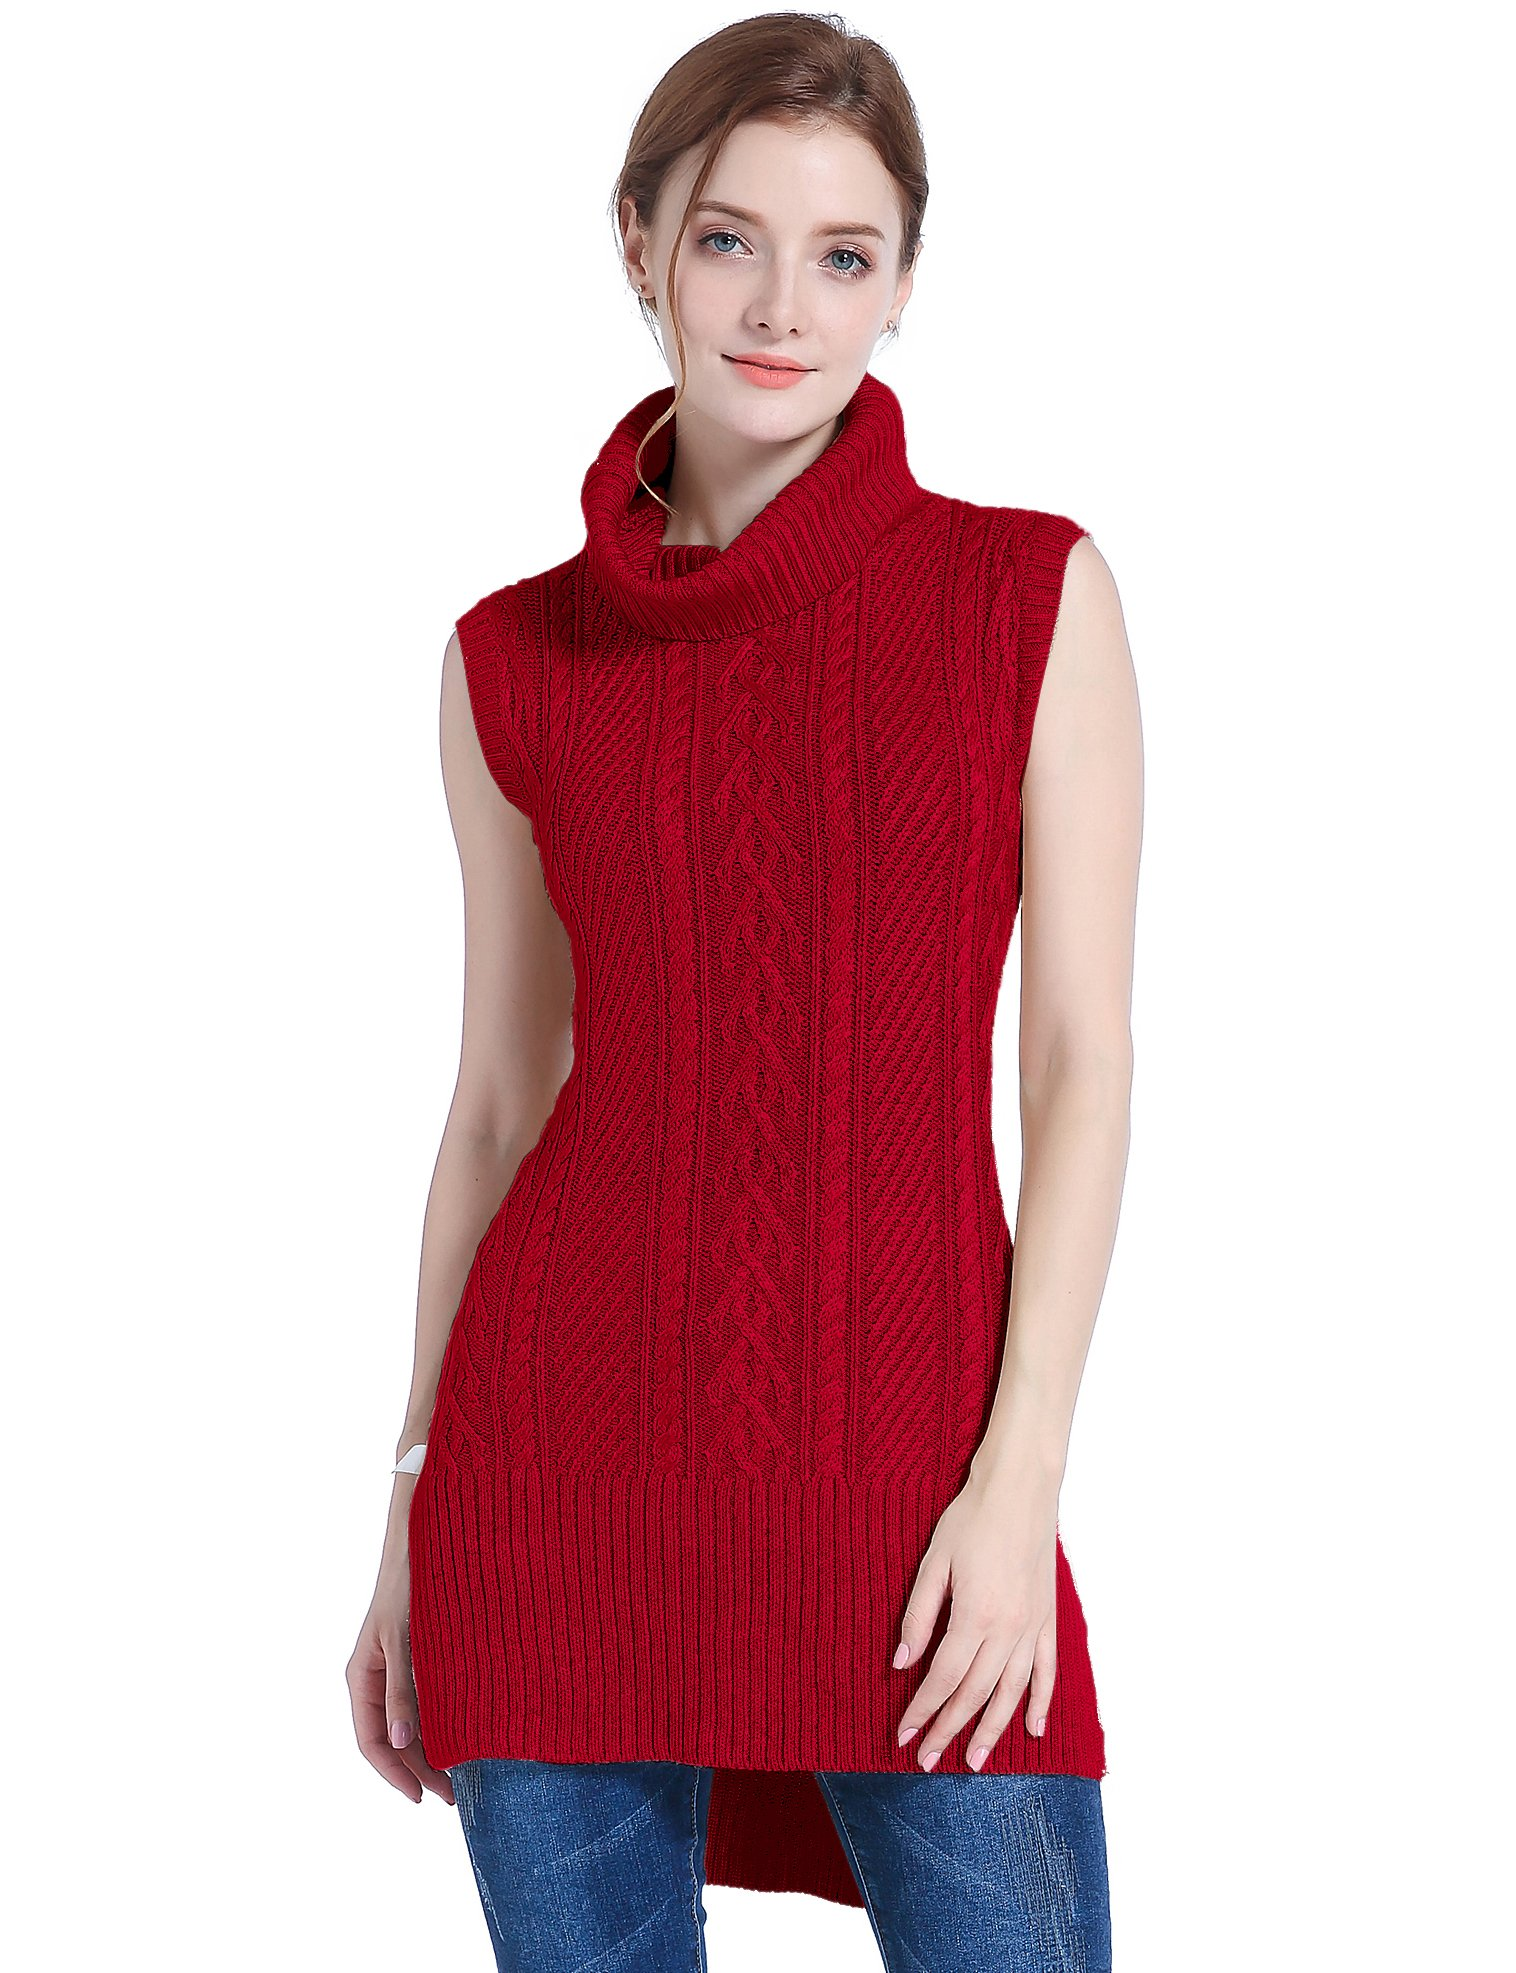 38476f59315a Galleon - V28 Women s Cowl Neck Cable Knit Stretchable Sleeveless Tops Pullover  Sweater (US Size 0-4